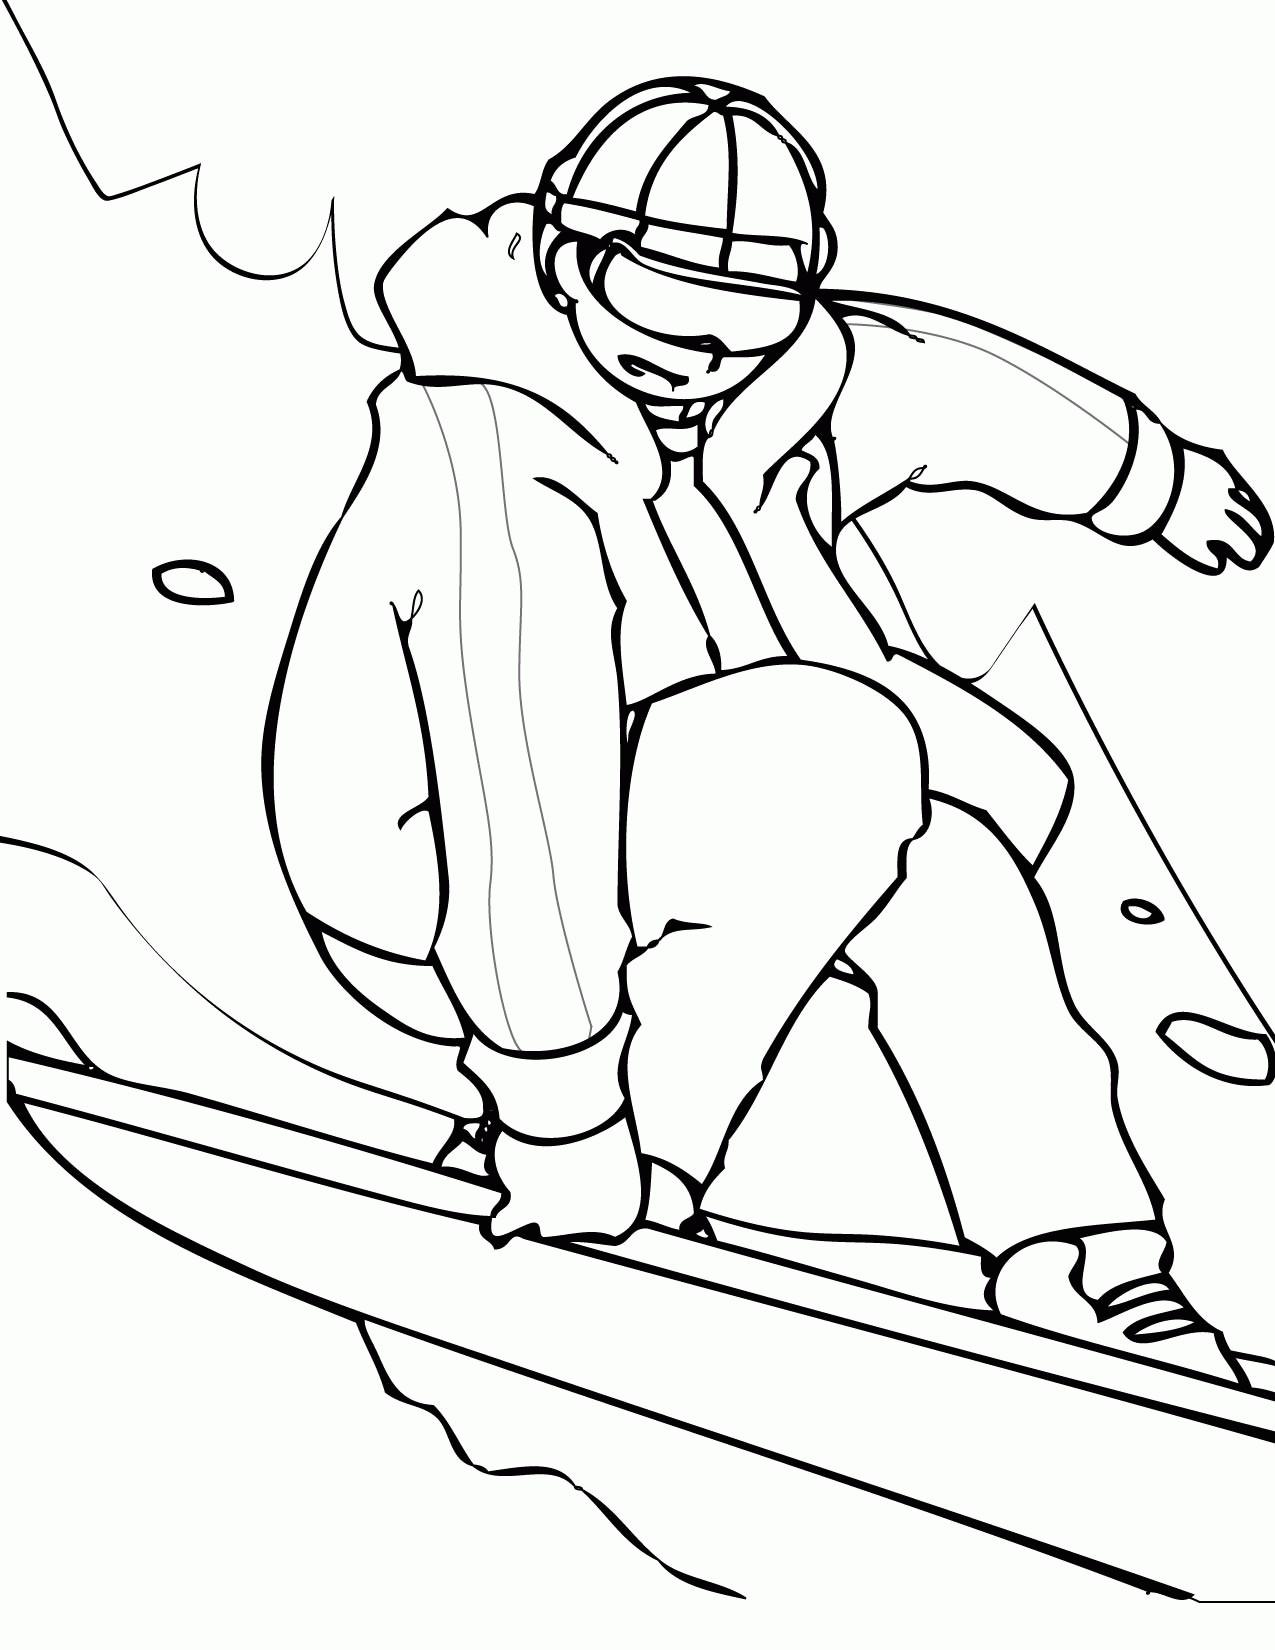 1275x1650 Cool Winter Sports Coloring Pages Kids